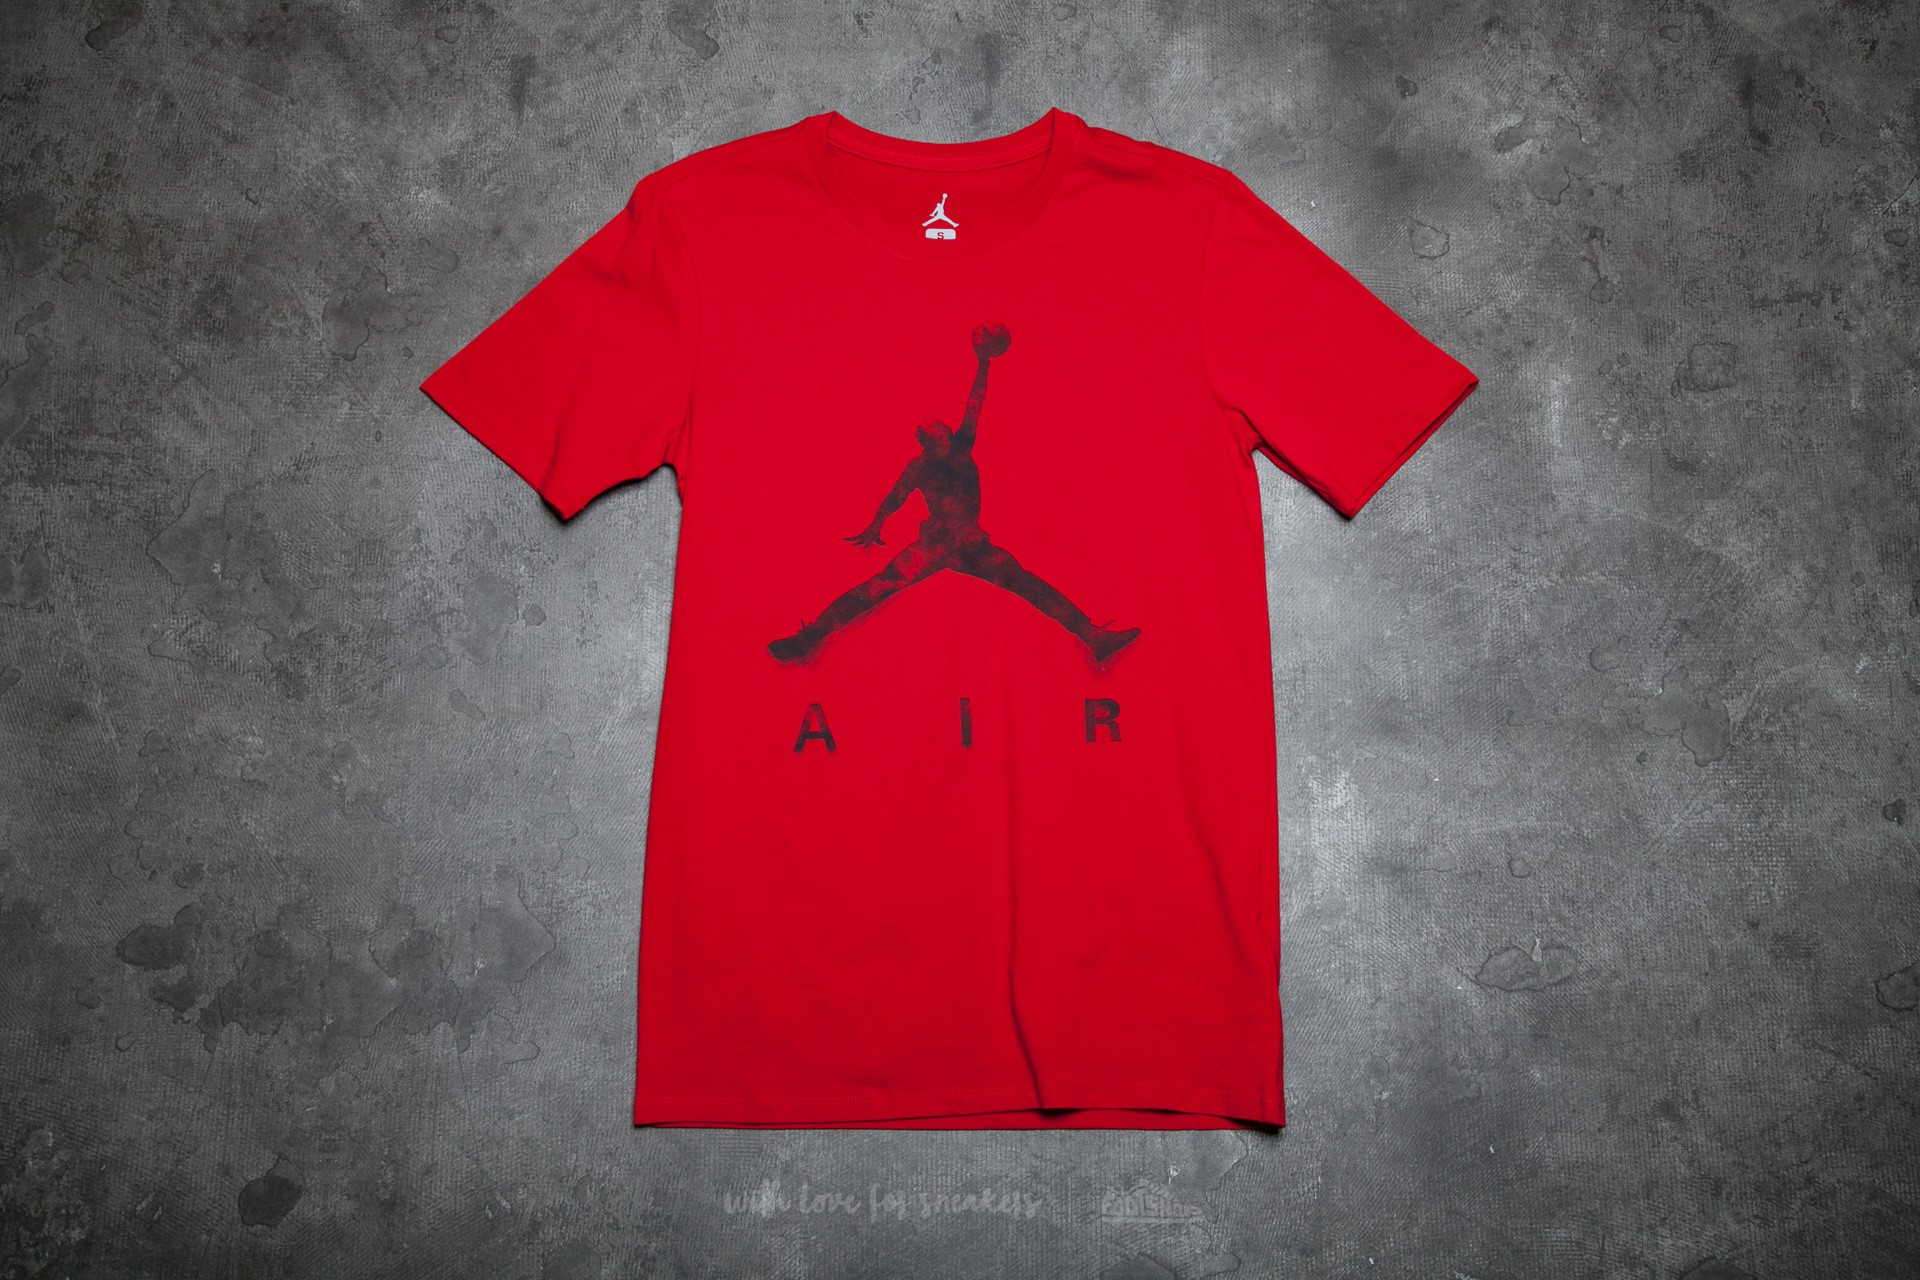 db0018ae1b2f70 Jordan Jumpman Air Dreams Tee Gym Red  Black